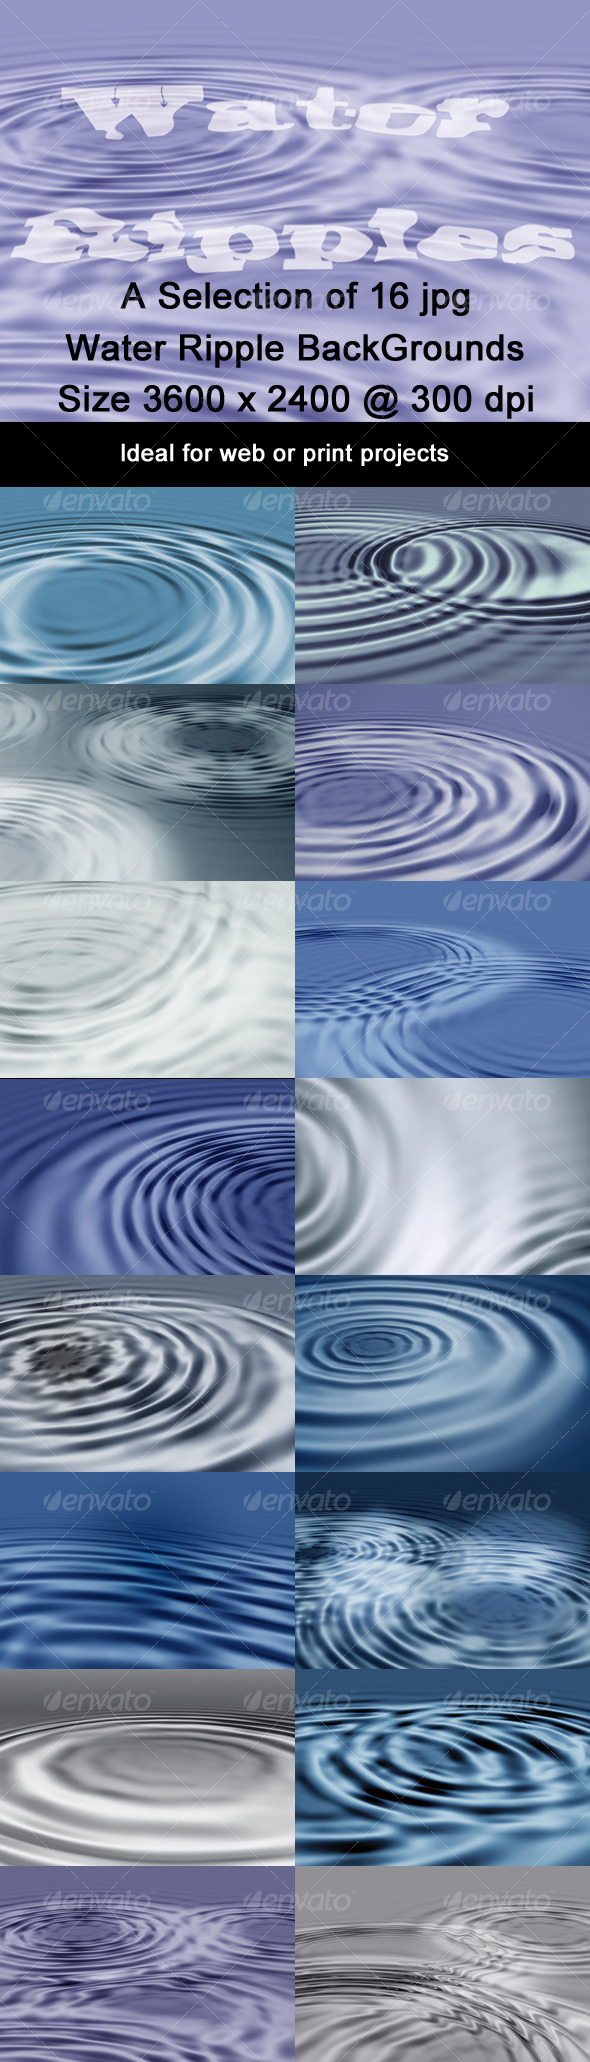 Water Ripples Background Pack